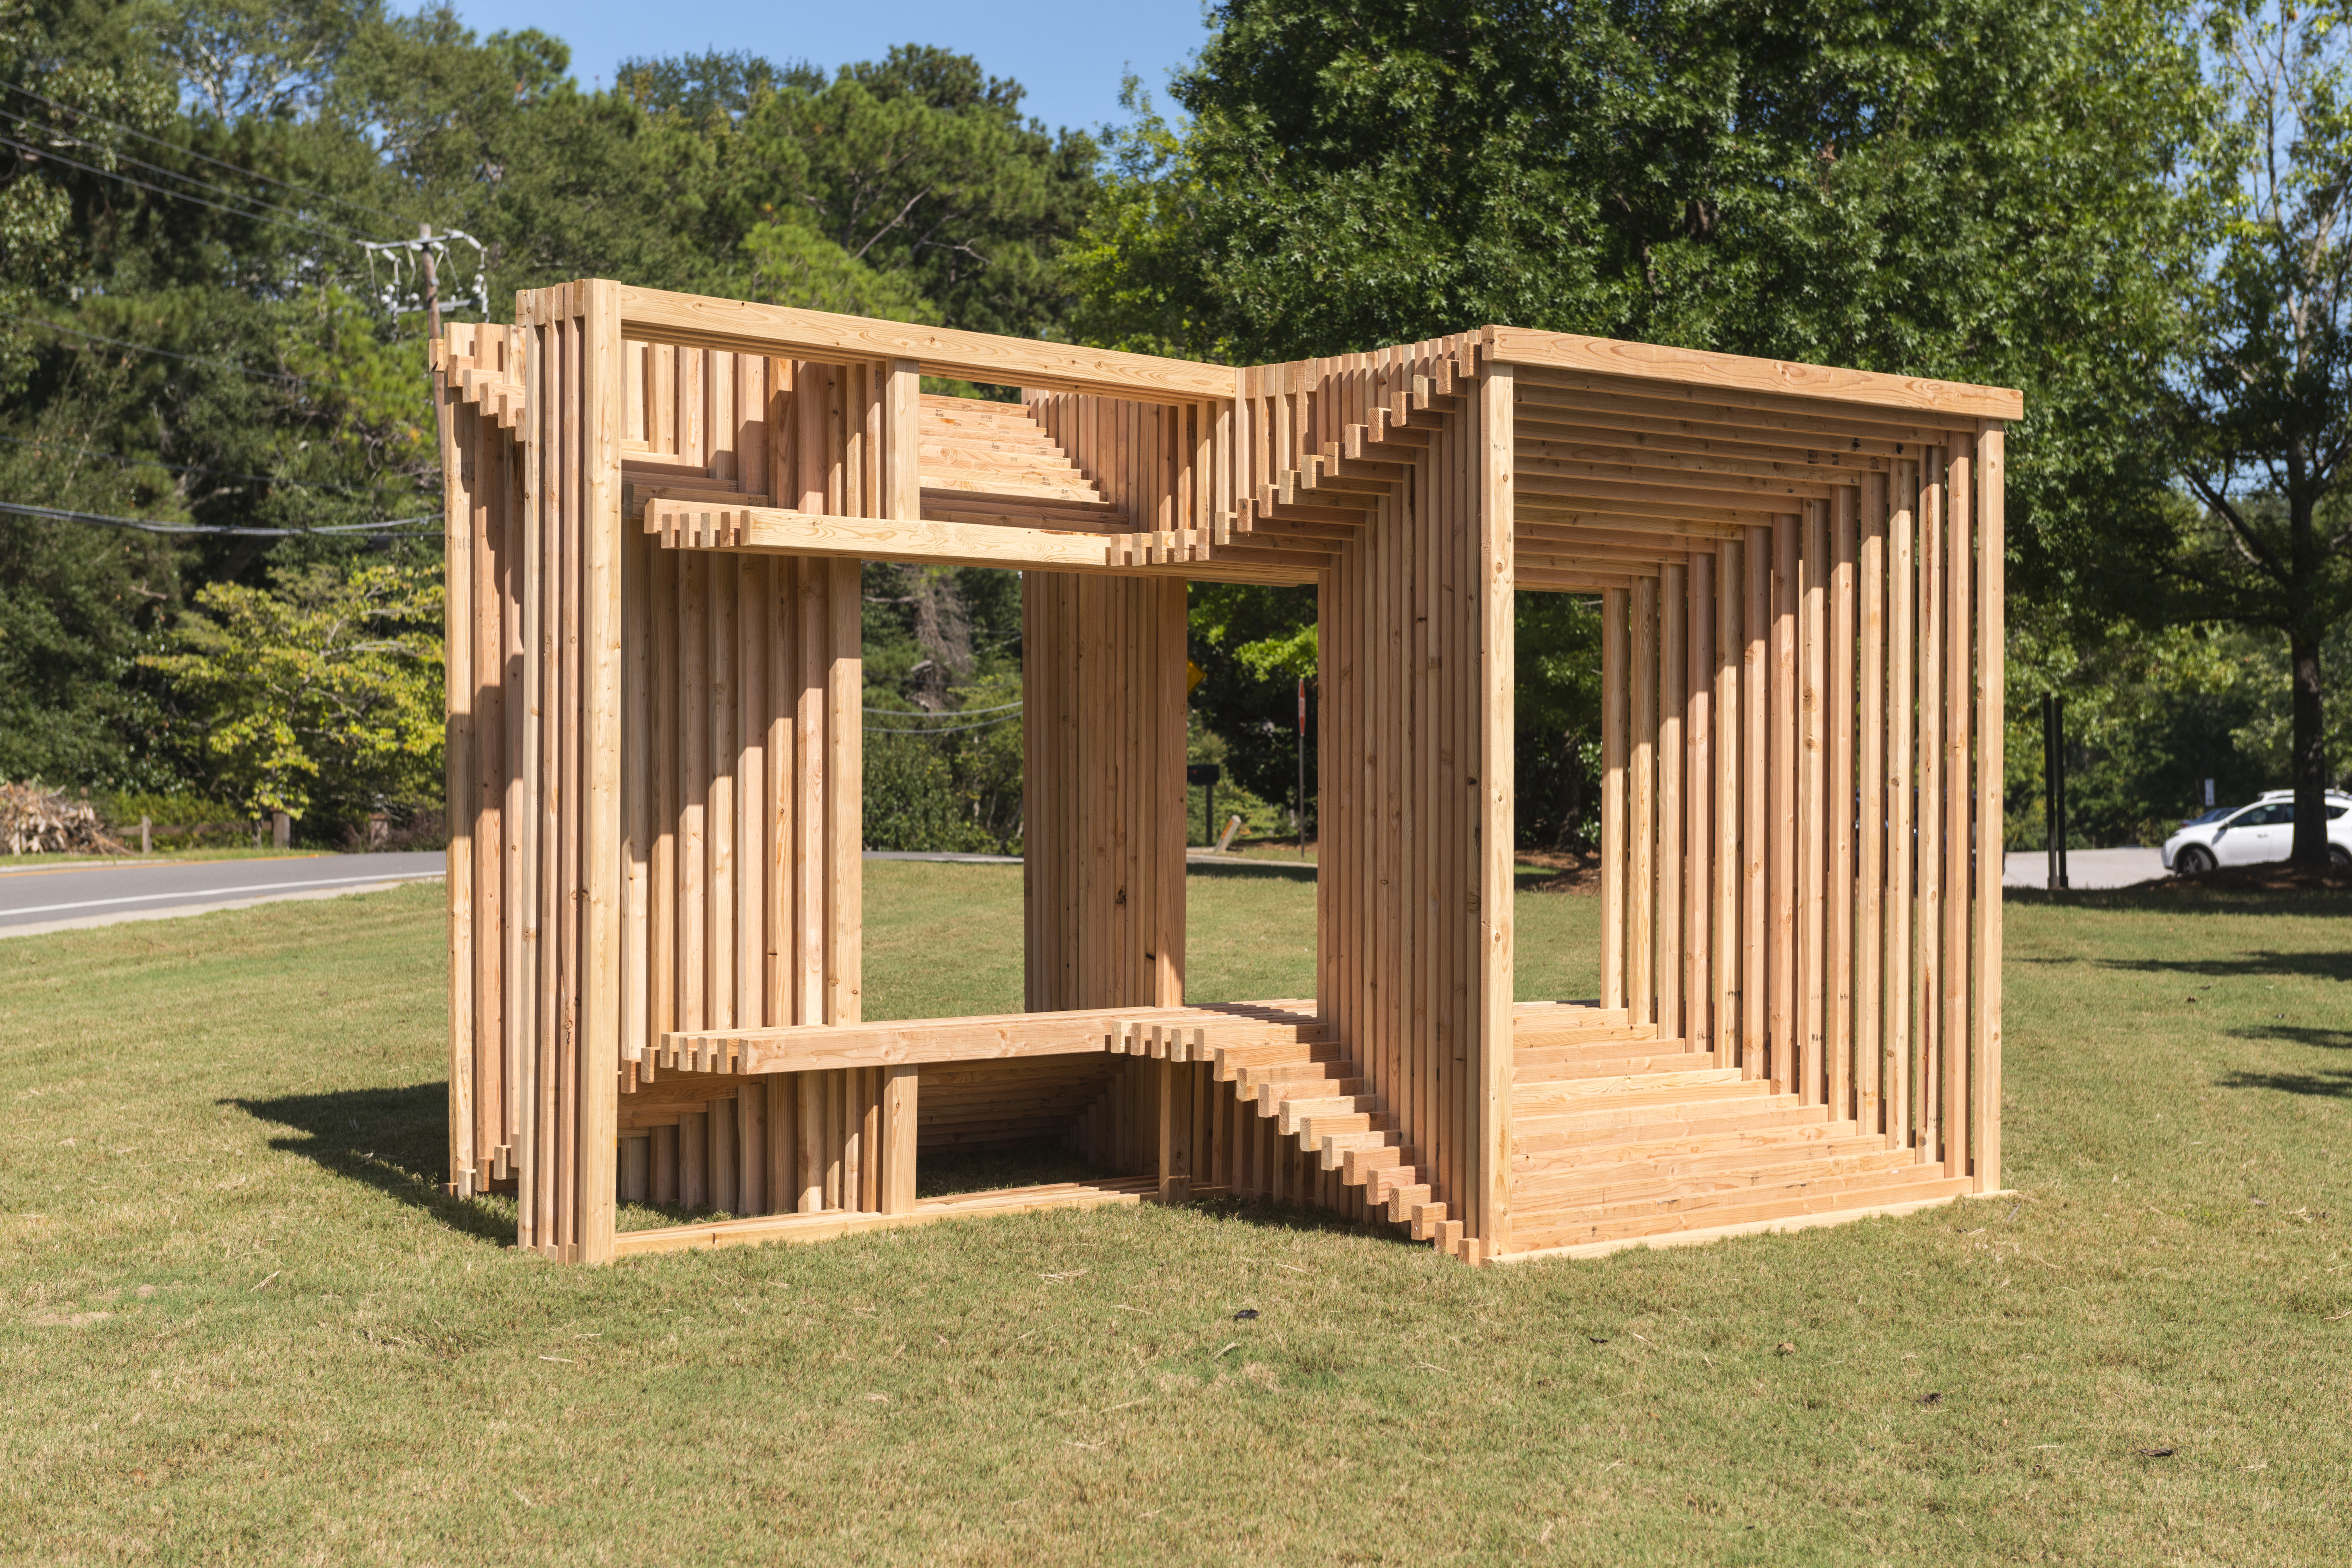 Out Of The Box: A Juried Outdoor Sculpture Exhibition 2017